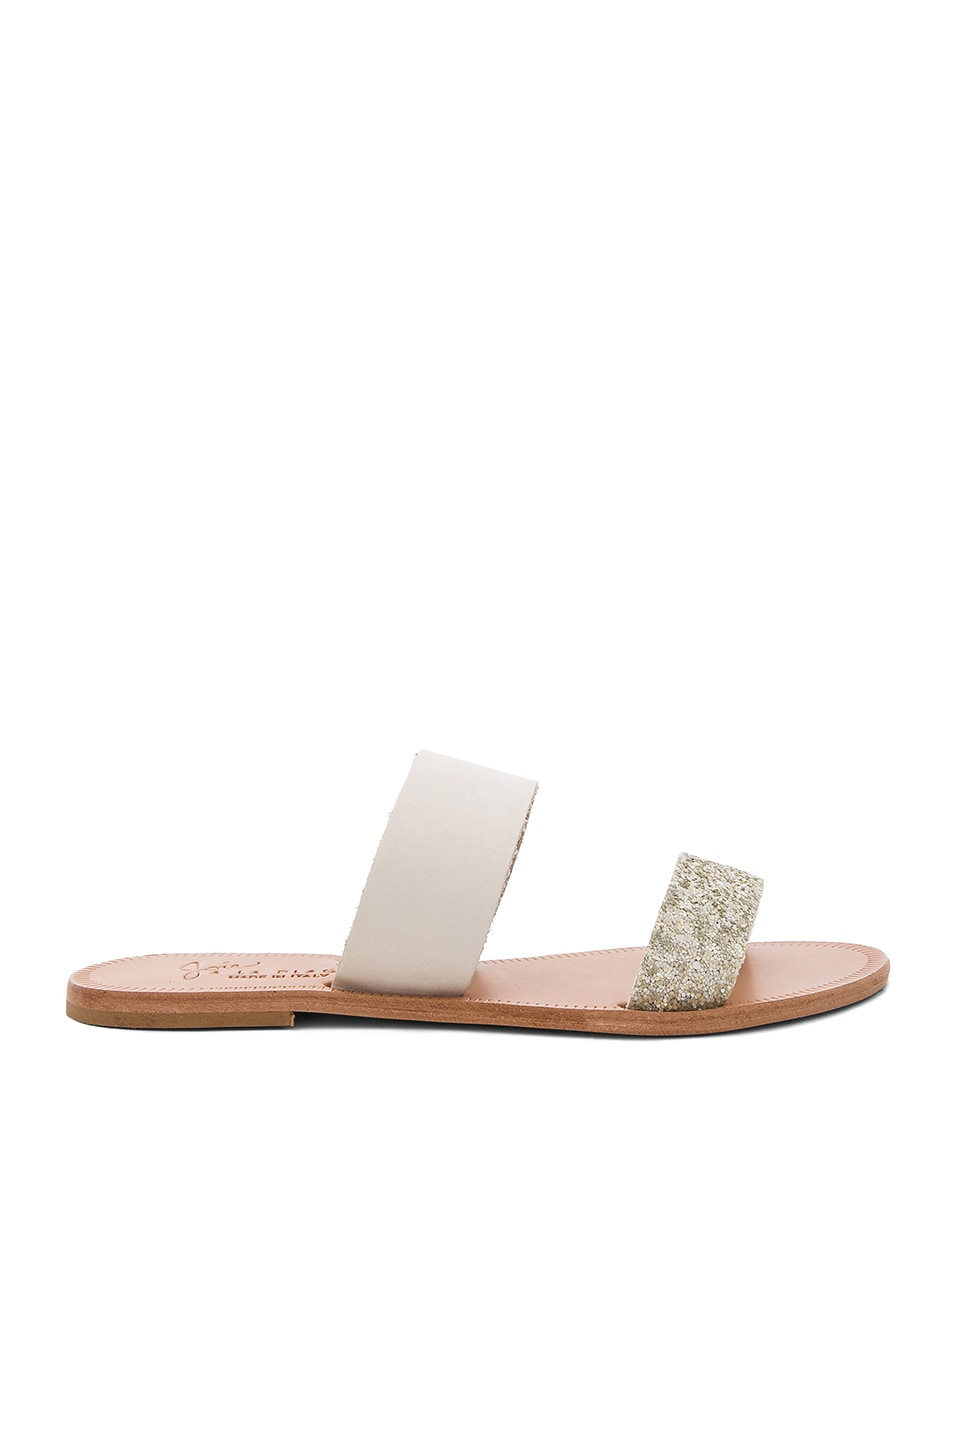 Photo of Sable Sandal by Joie on sale